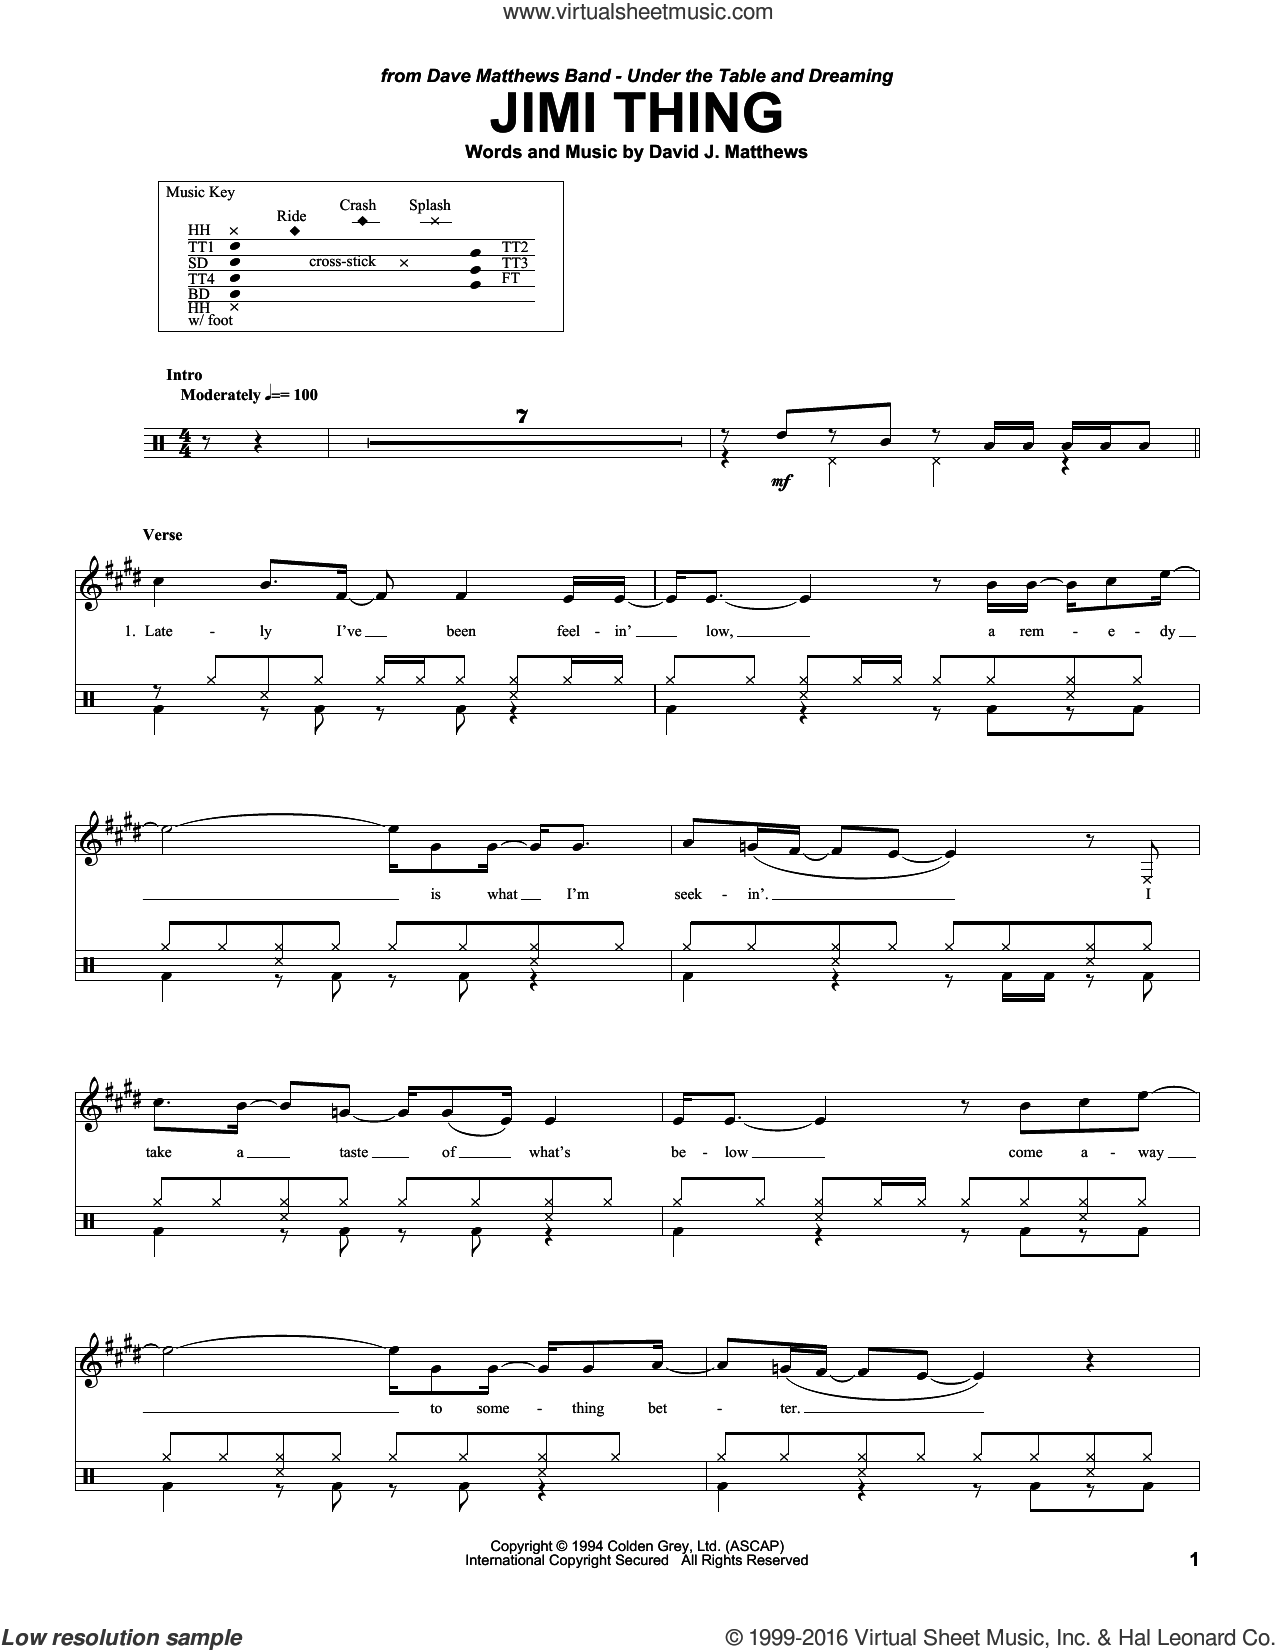 Jimi Thing sheet music for drums by Dave Matthews Band, intermediate skill level